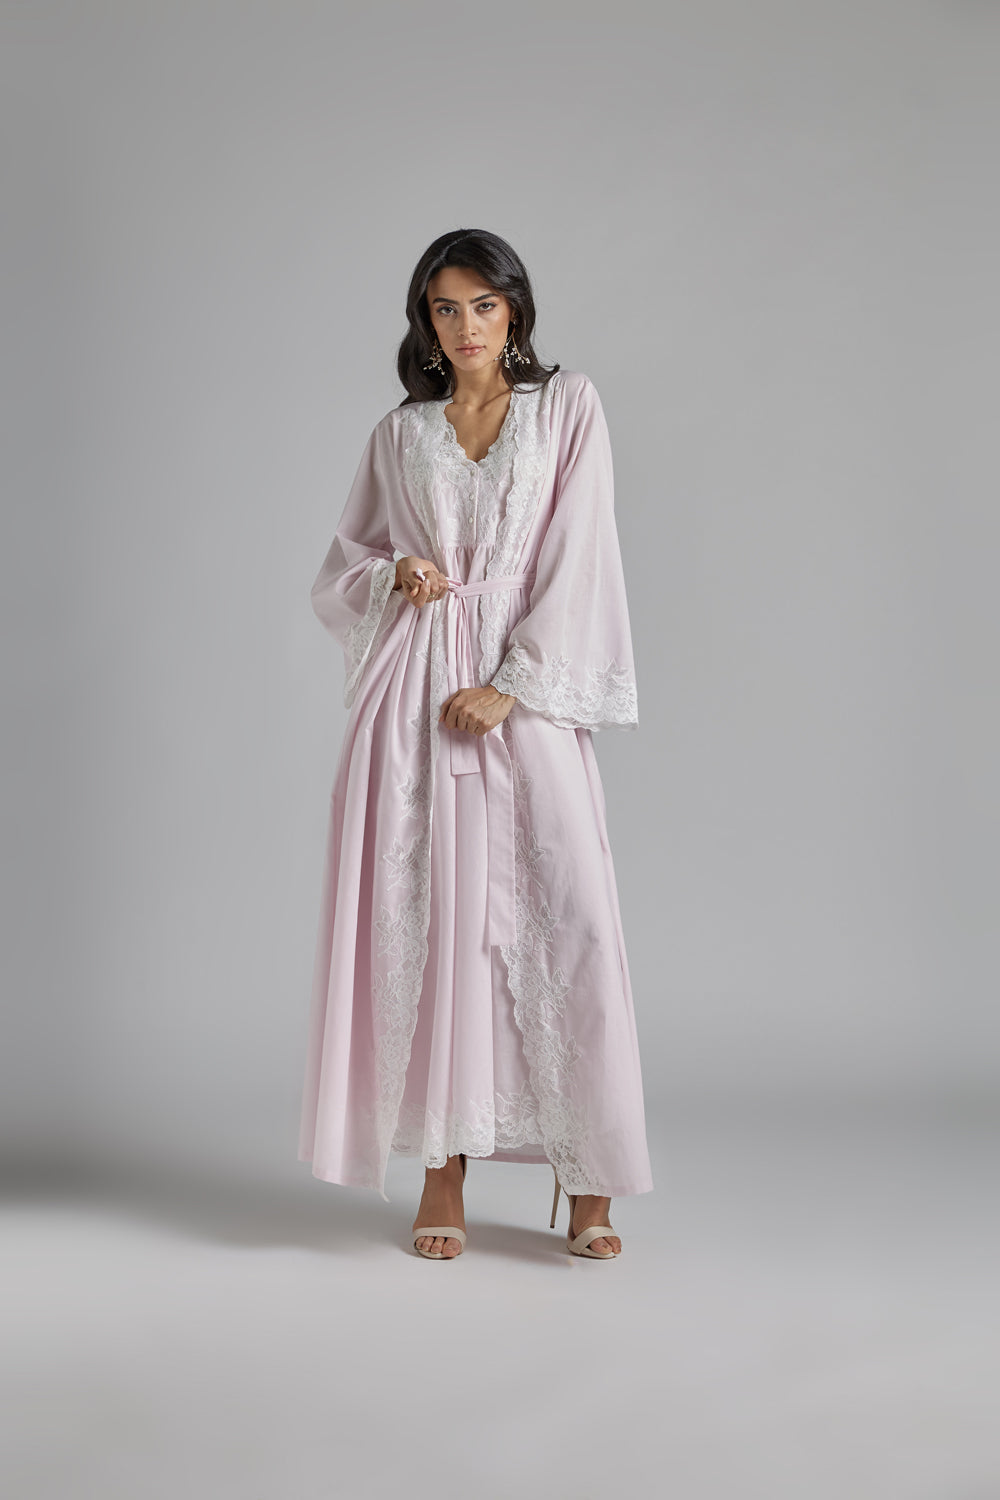 Cotton Vual Baby Pink Robe Set - Reina